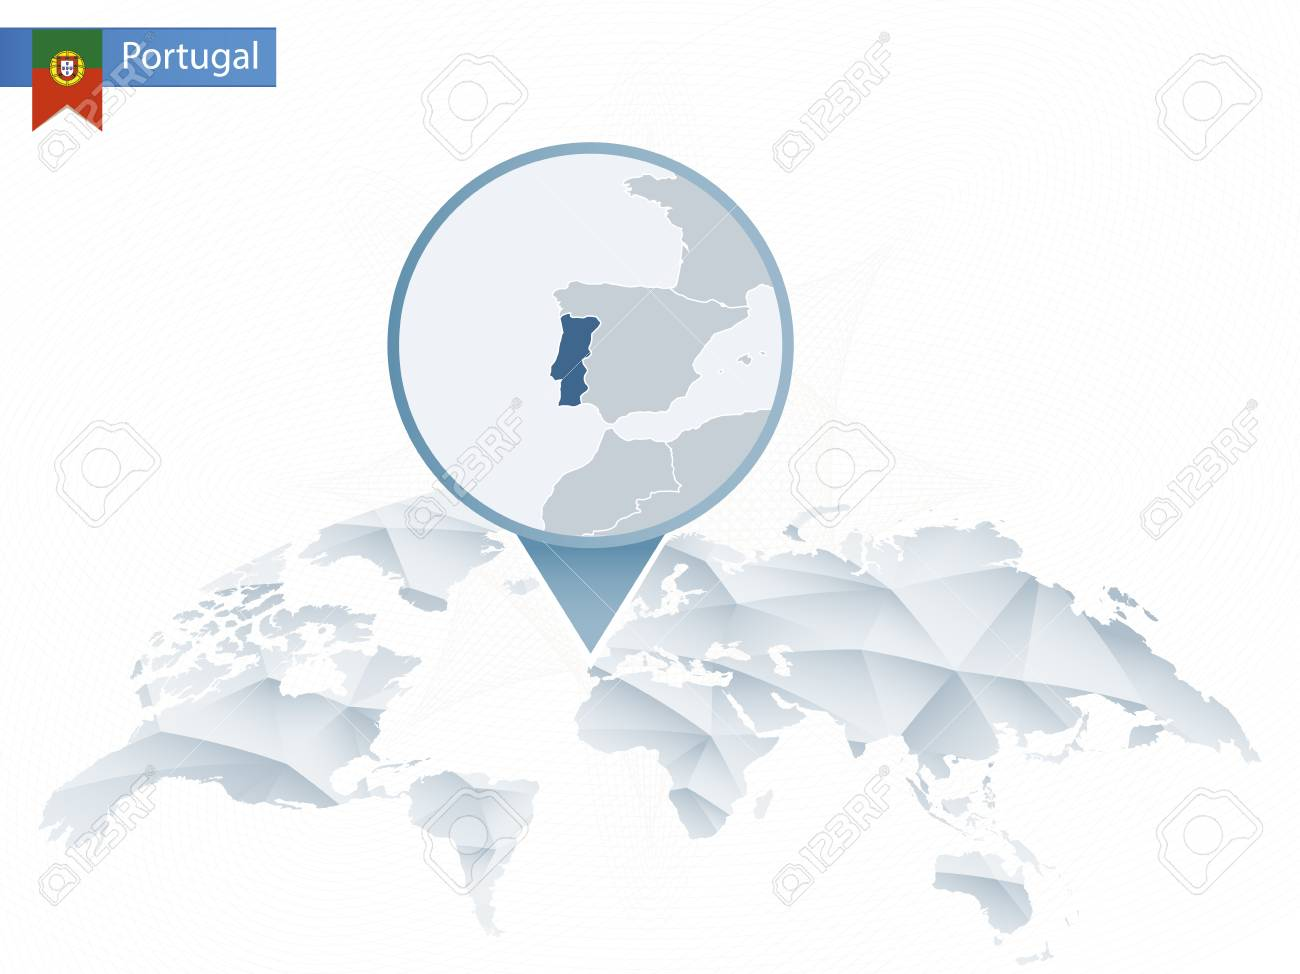 Portugal On The World Map.Abstract Rounded World Map With Pinned Detailed Portugal Map